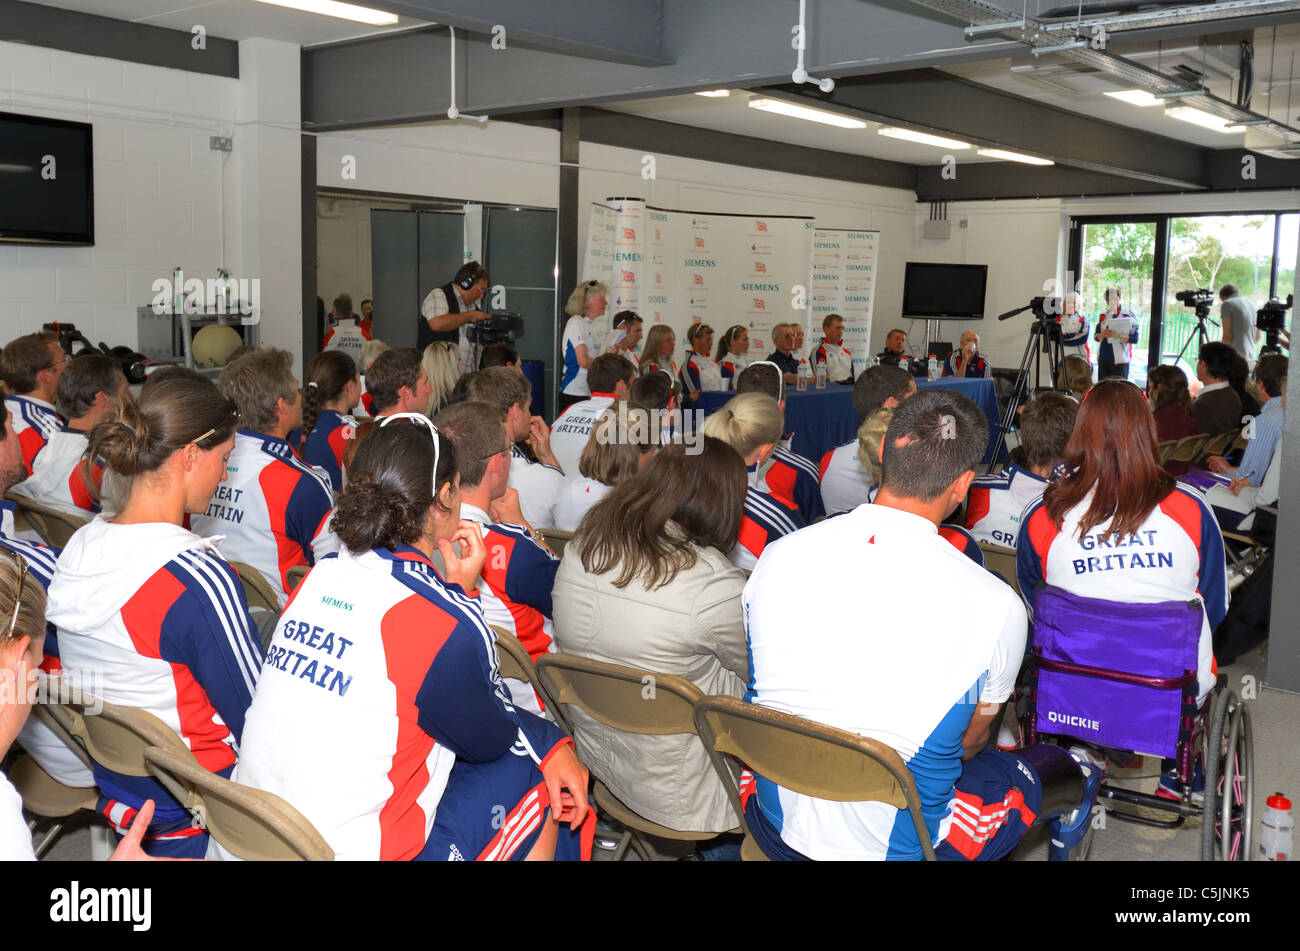 GB Rowing Team for the World Championships being announced in  the Redgrave Pinsent Rowing Lake and Sherriff Boathouse - Stock Image